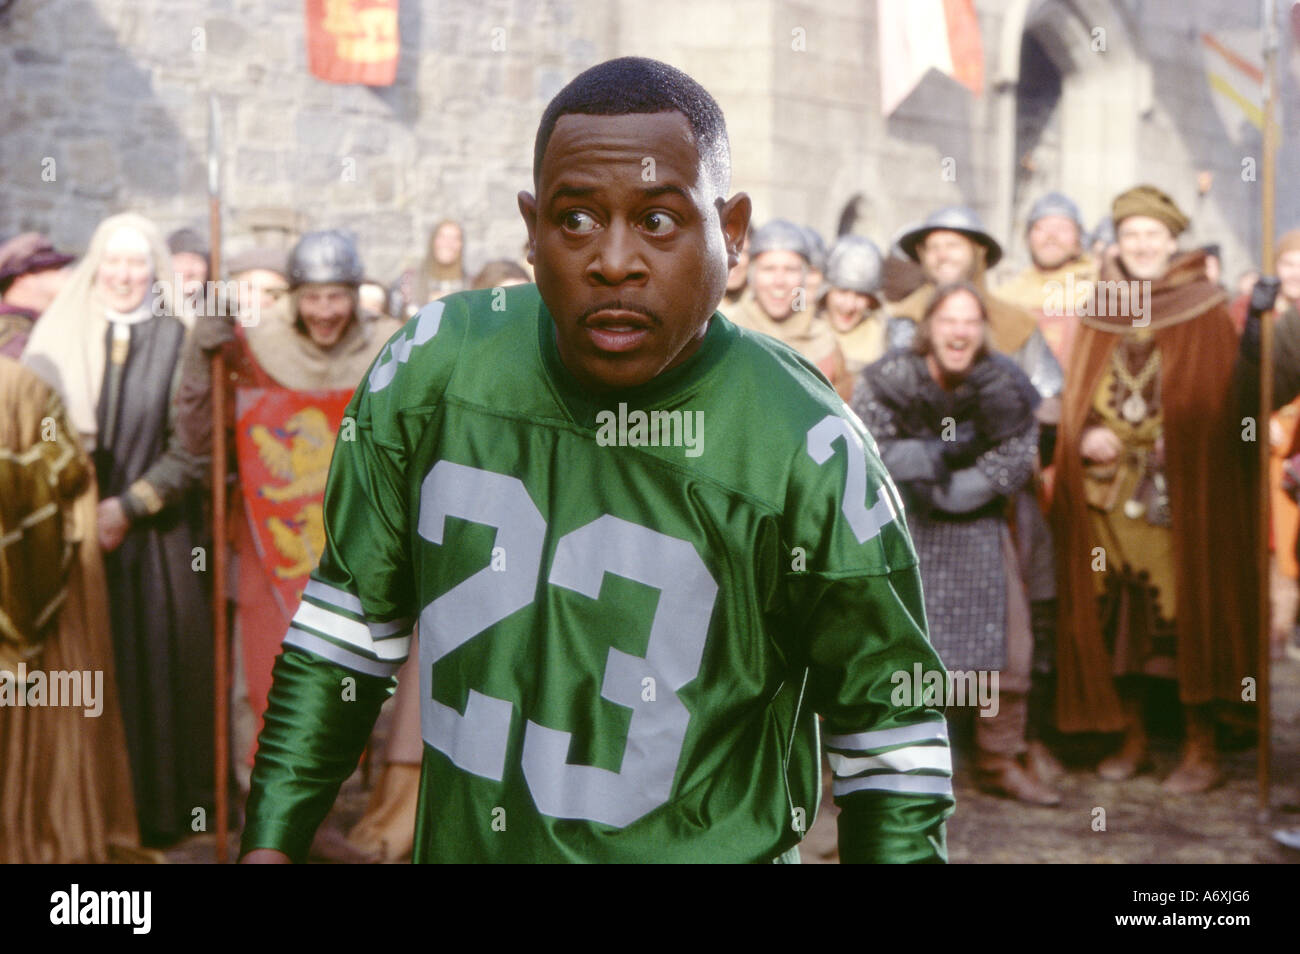 BLACK KNIGHT 2001 Twentieth Century Fox film with Martin Lawrence as Jamal - Stock Image